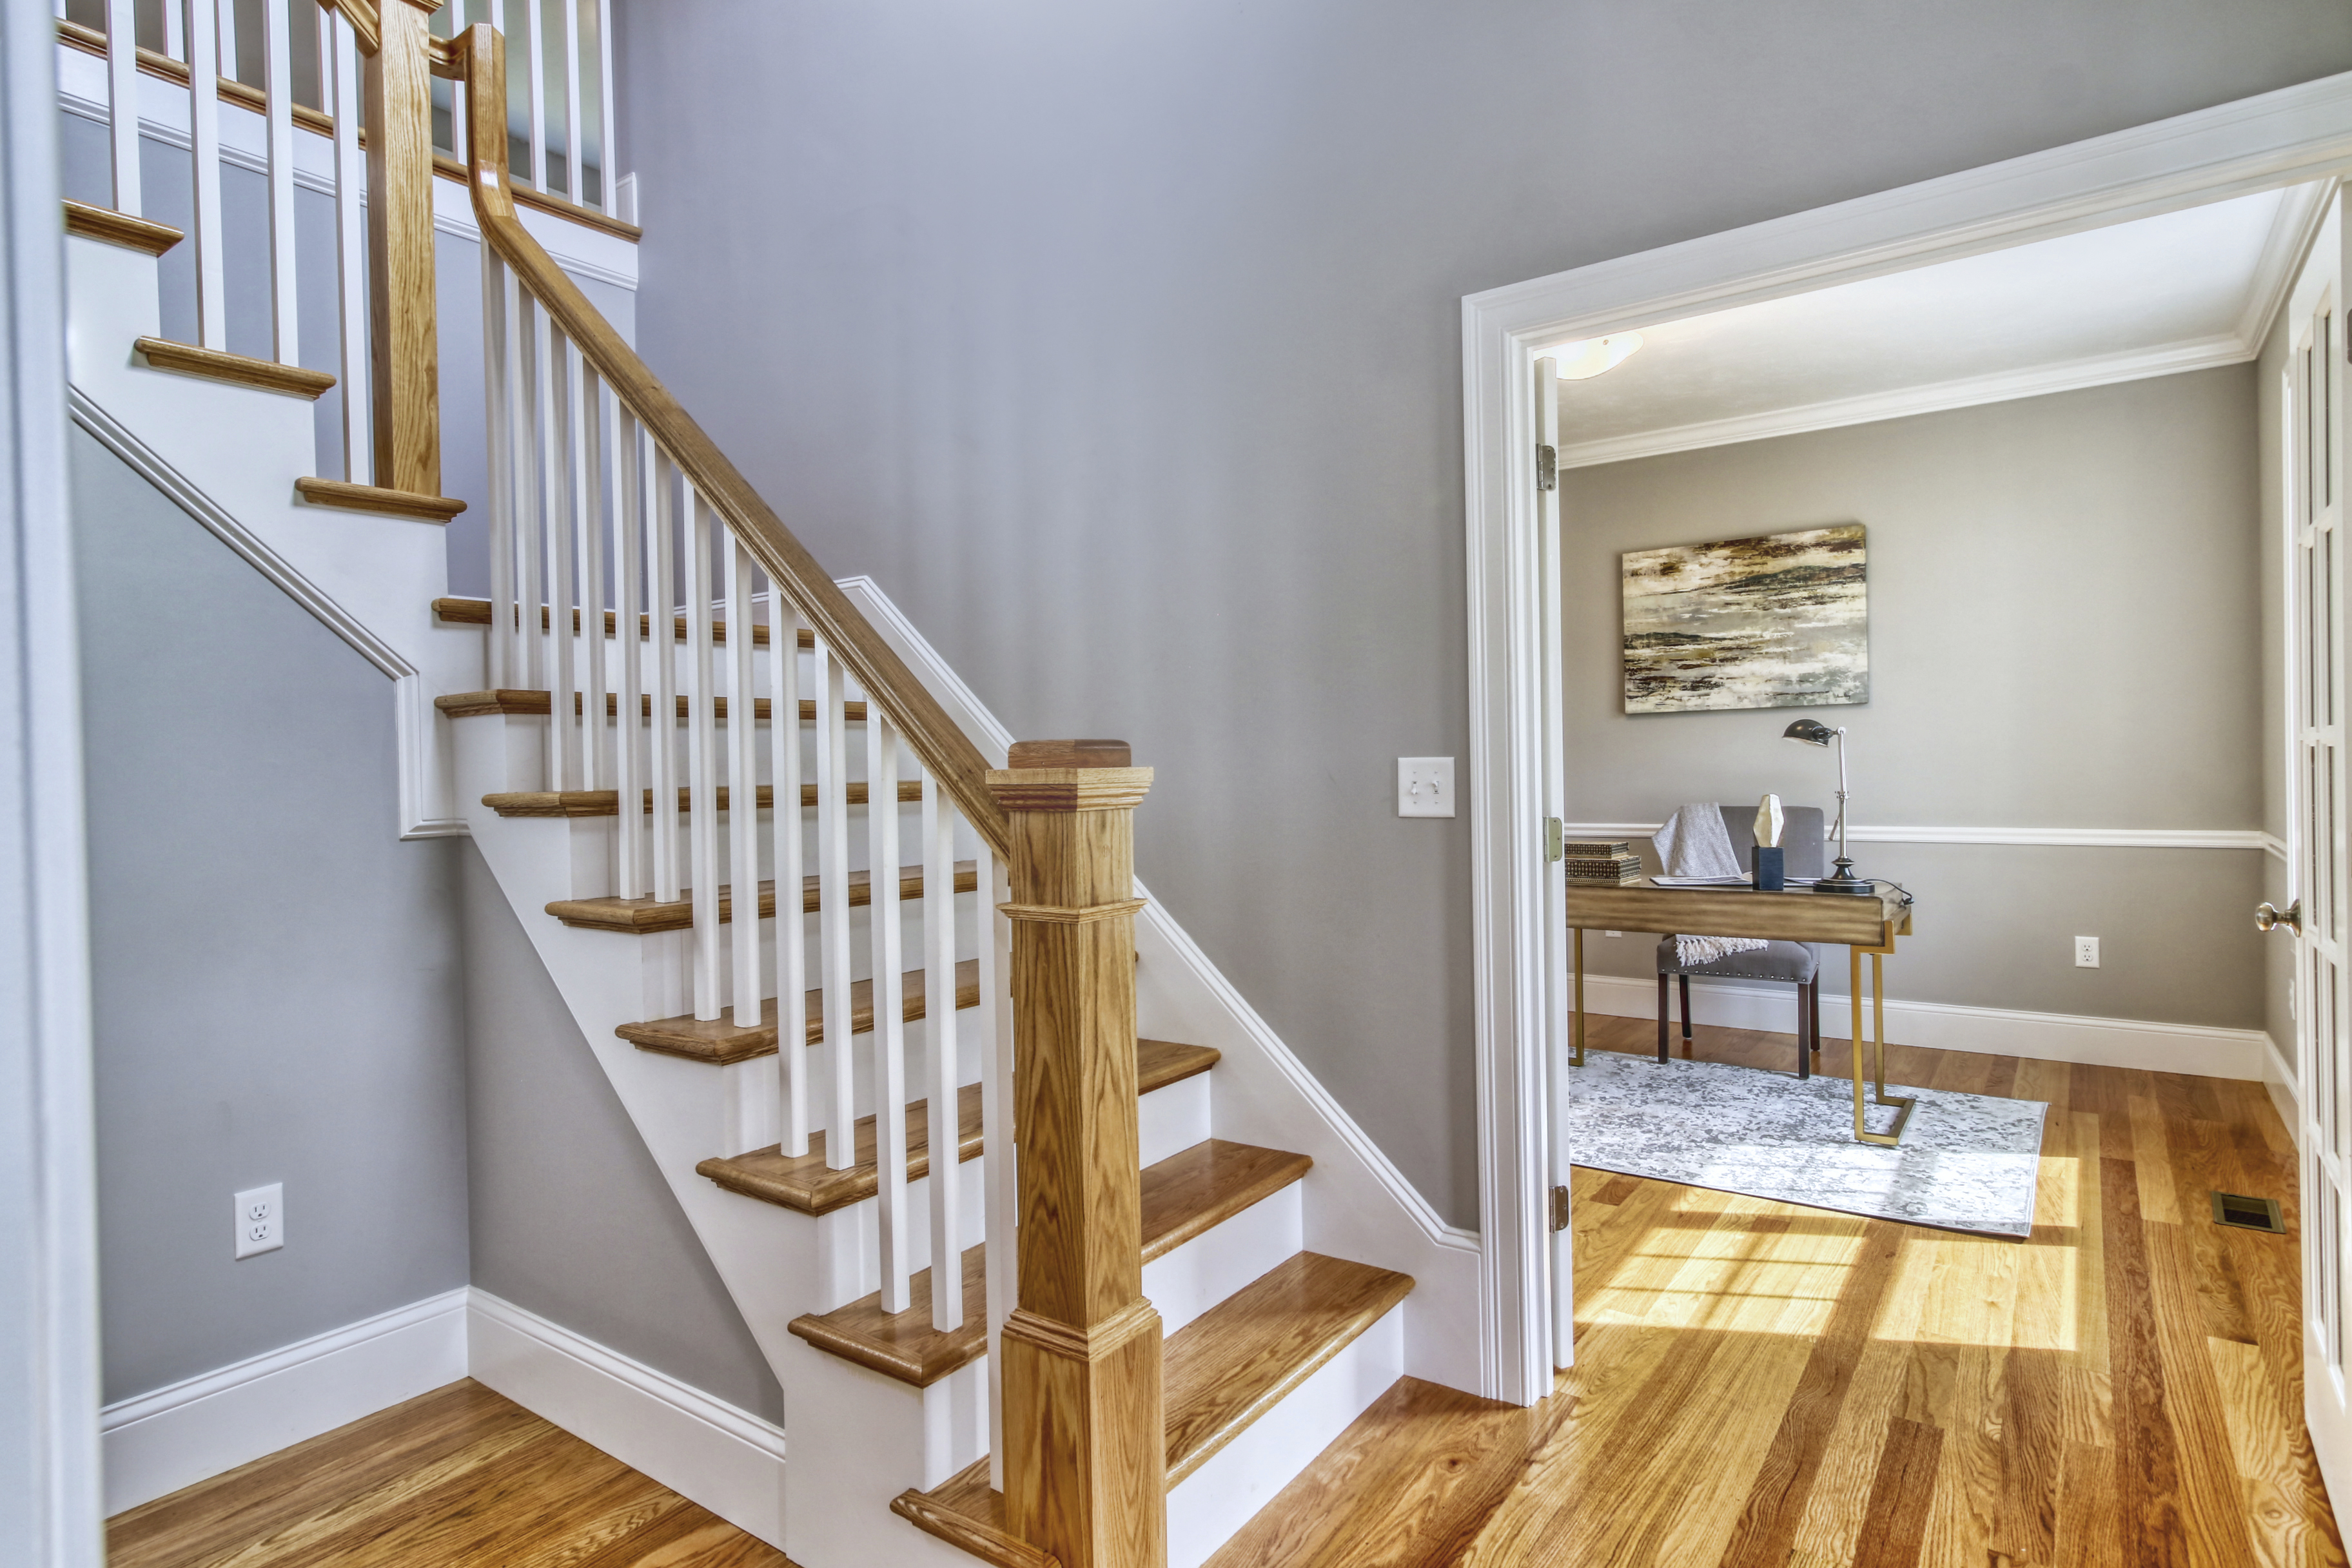 Pastel grey walls with white-and-wood-designed railings and staircase